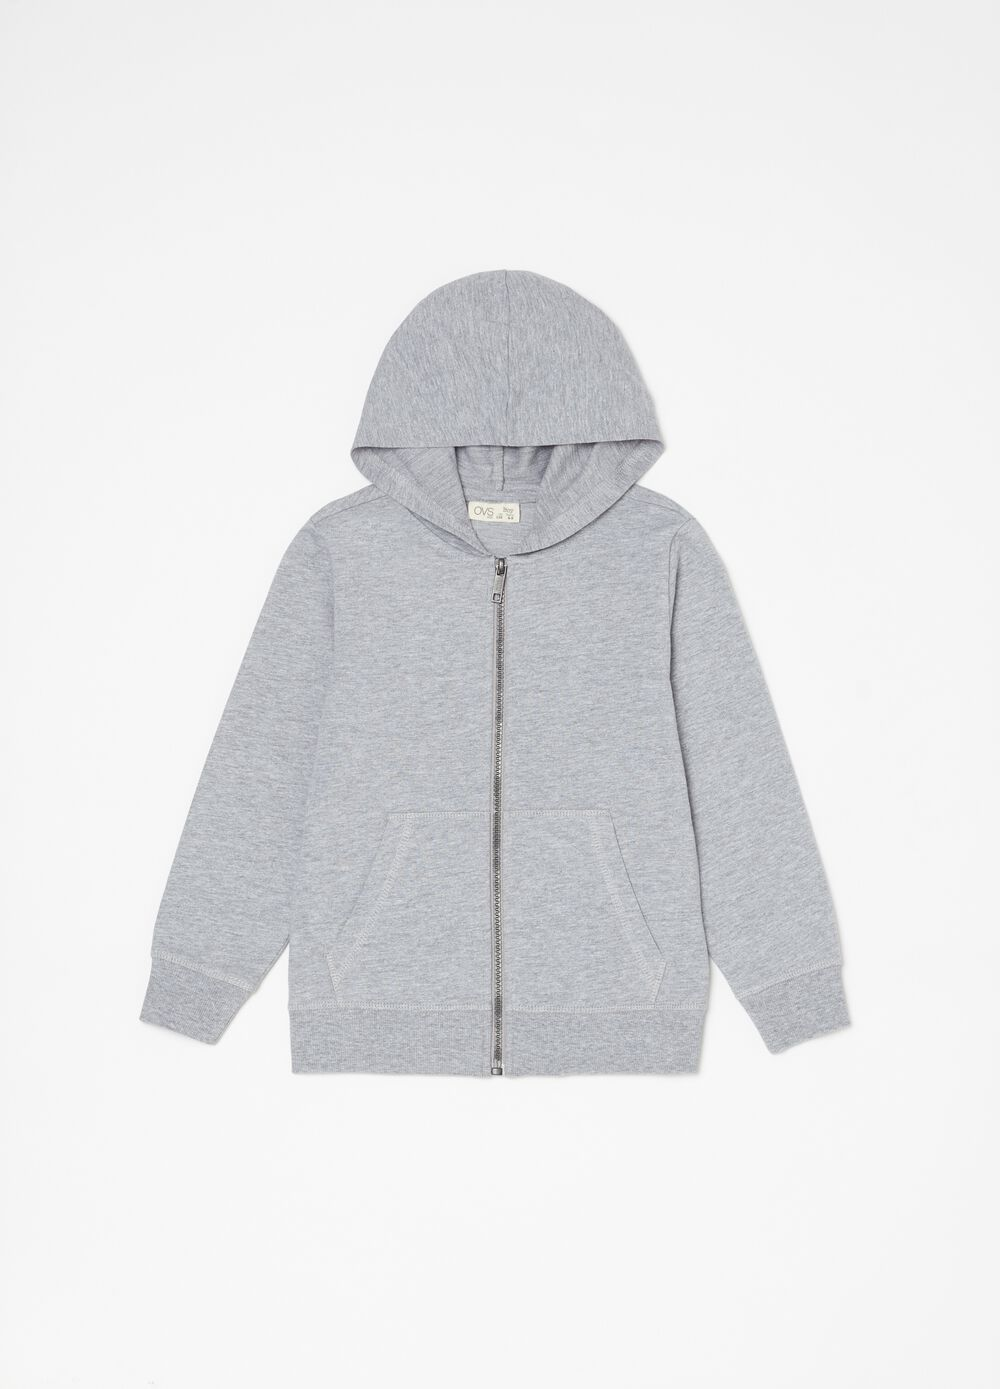 Organic cotton sweatshirt with hood and zip